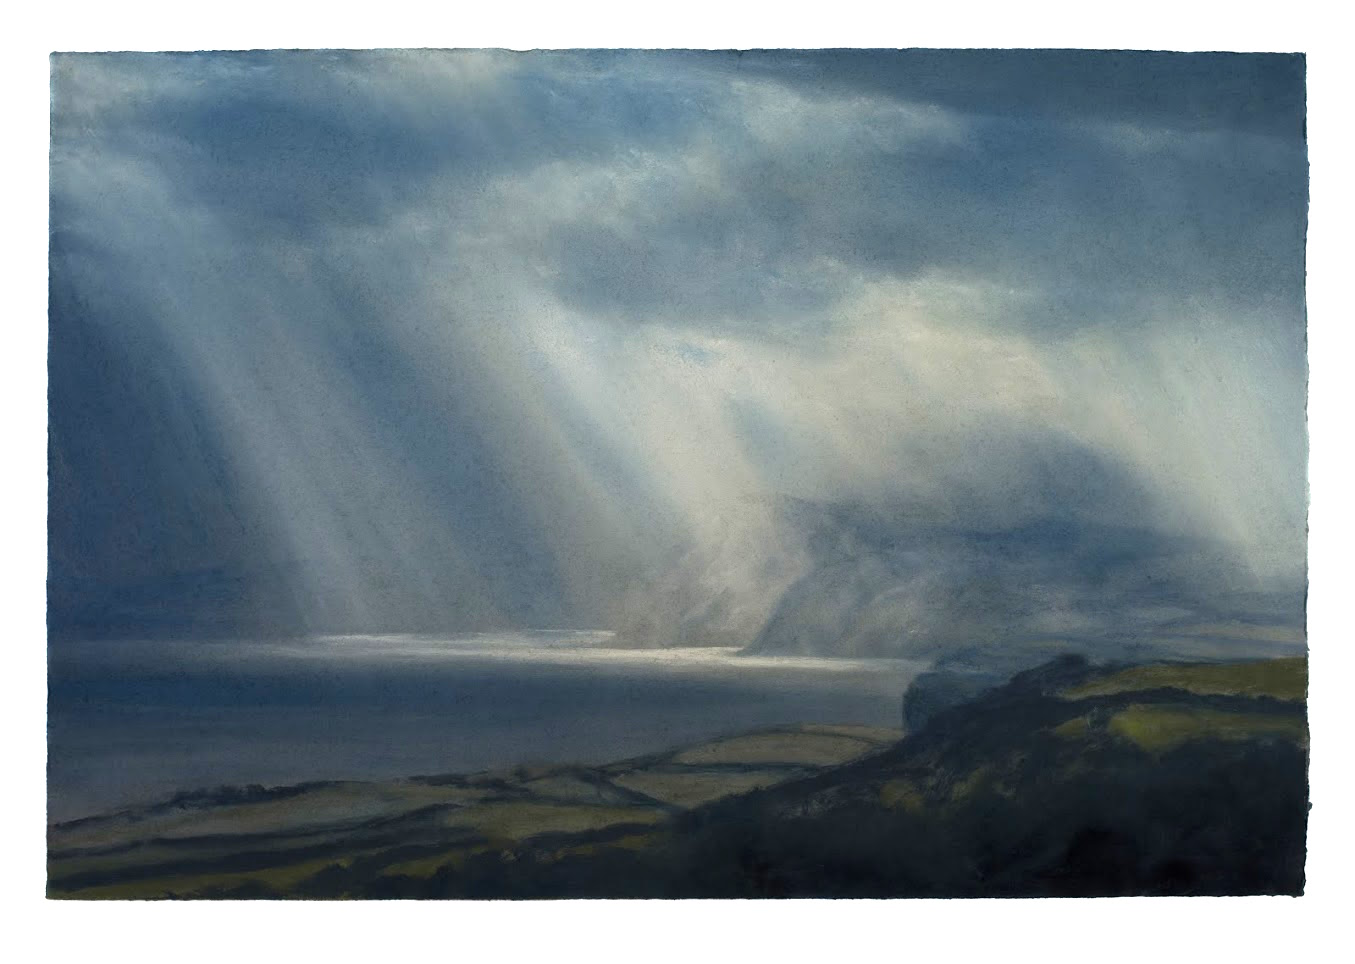 Artist: Matthew Draper  Title: Jurassic Coast no 3  Size: 61.5 x 91.5 cm  Medium: Pastel on paper  Price: £4750